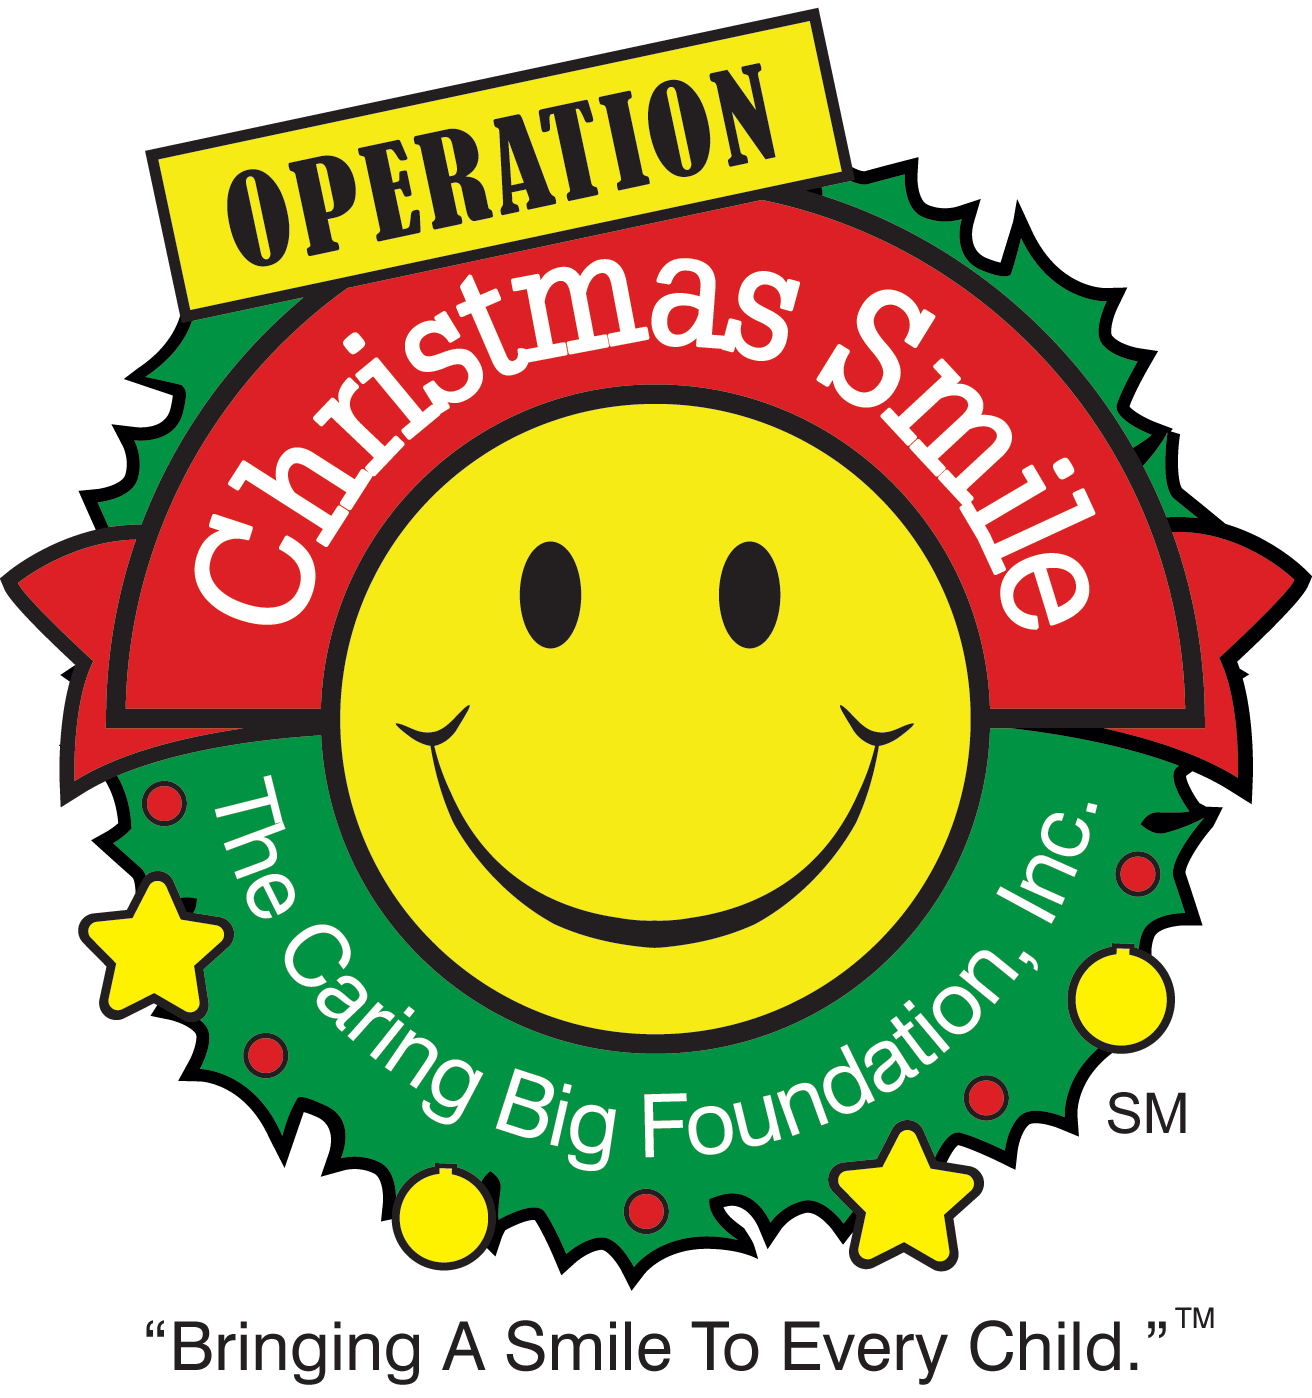 Caring Big Foundation's Operation Christmas Smile – 2014 Winter Drive